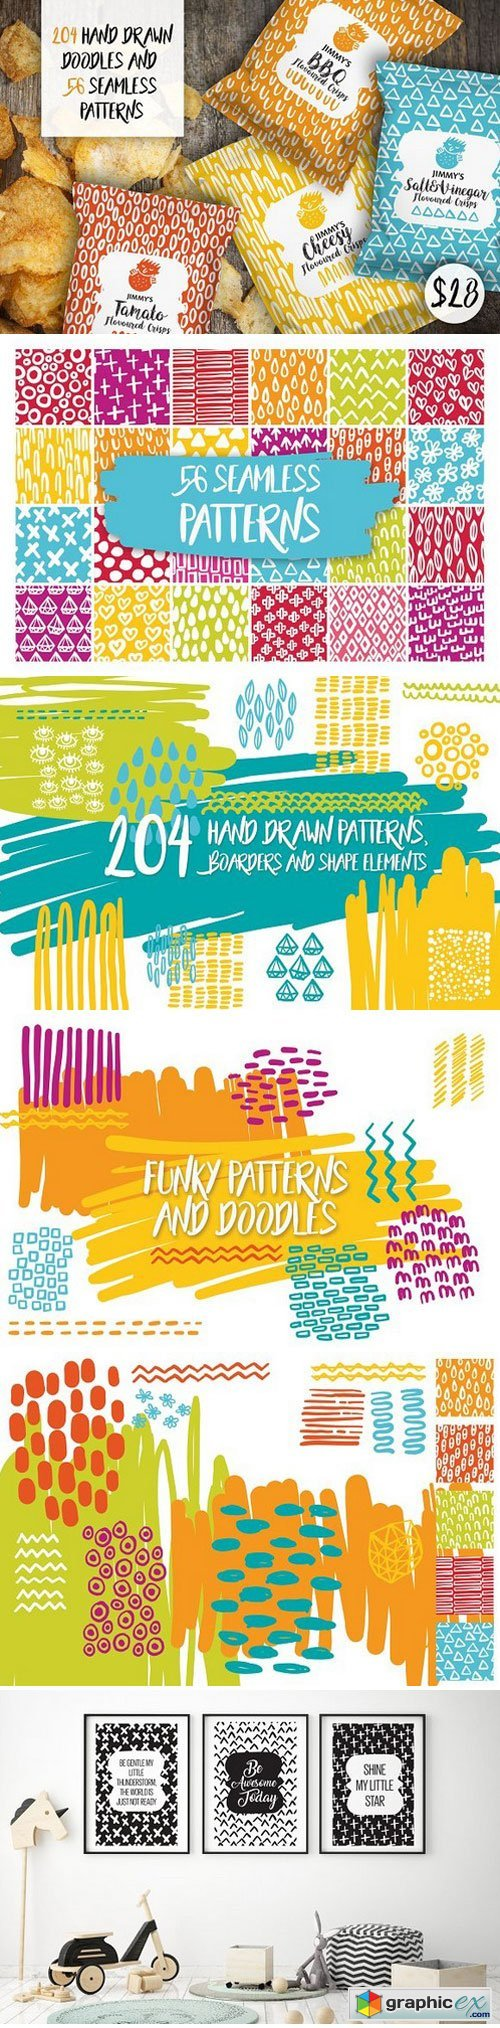 204 Hand Drawn Doodles & 56 Patterns